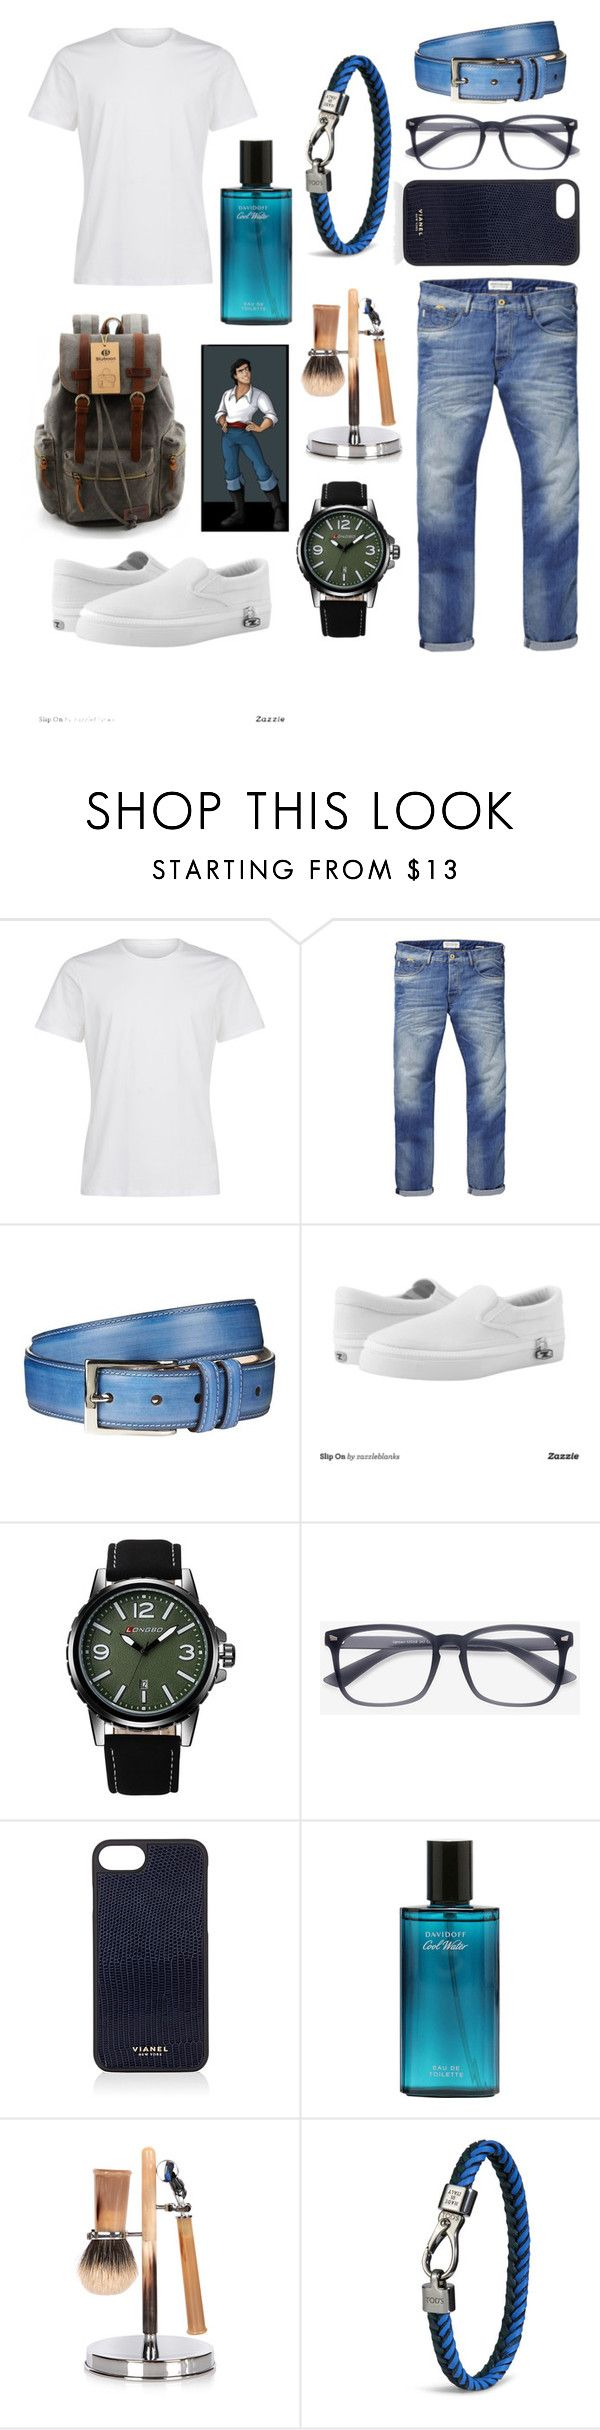 """""""Prince Erik 🐠🐬"""" by mmcook07 ❤ liked on Polyvore featuring Scotch & Soda, Harrods, Zipz, Vianel, Cedes, Tod's, men's fashion and menswear"""